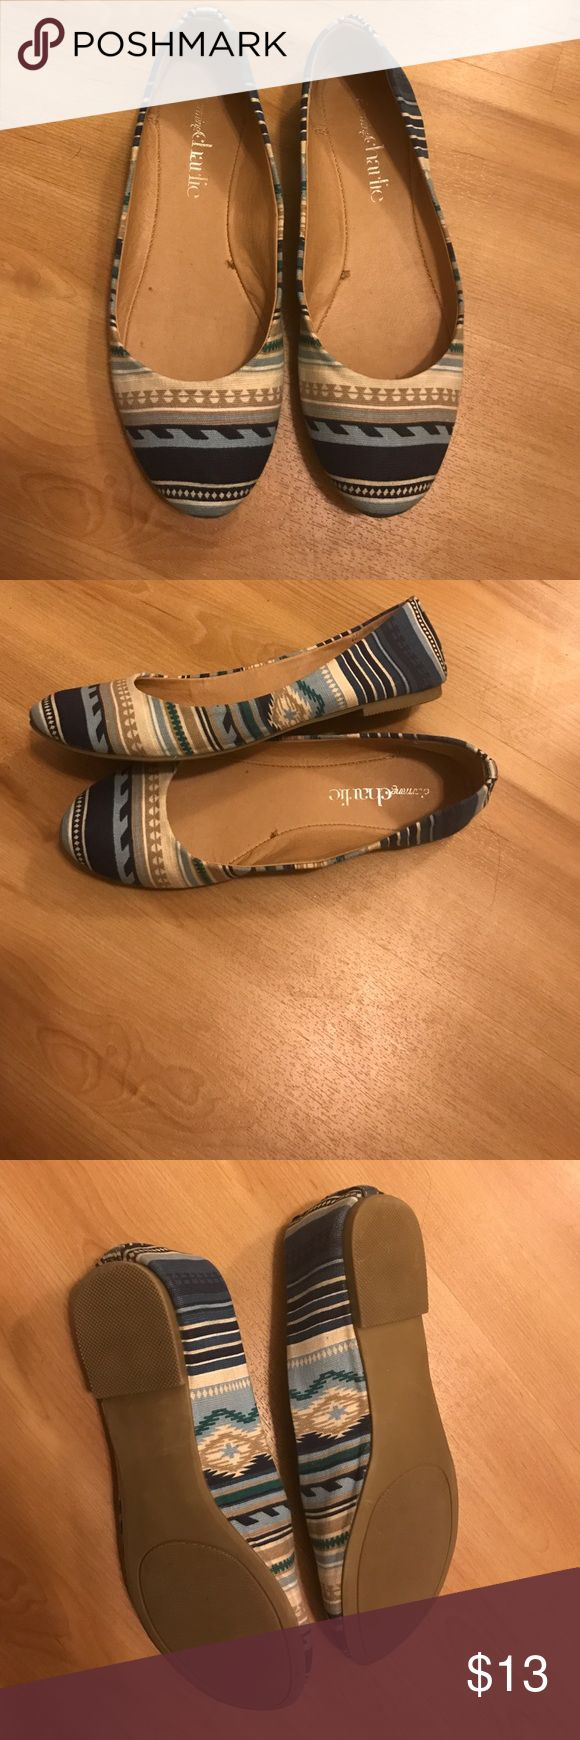 Charming Charlie Aztec Flats Previously worn, but still in good condition. Size 6 Charming Charlie Shoes Flats & Loafers